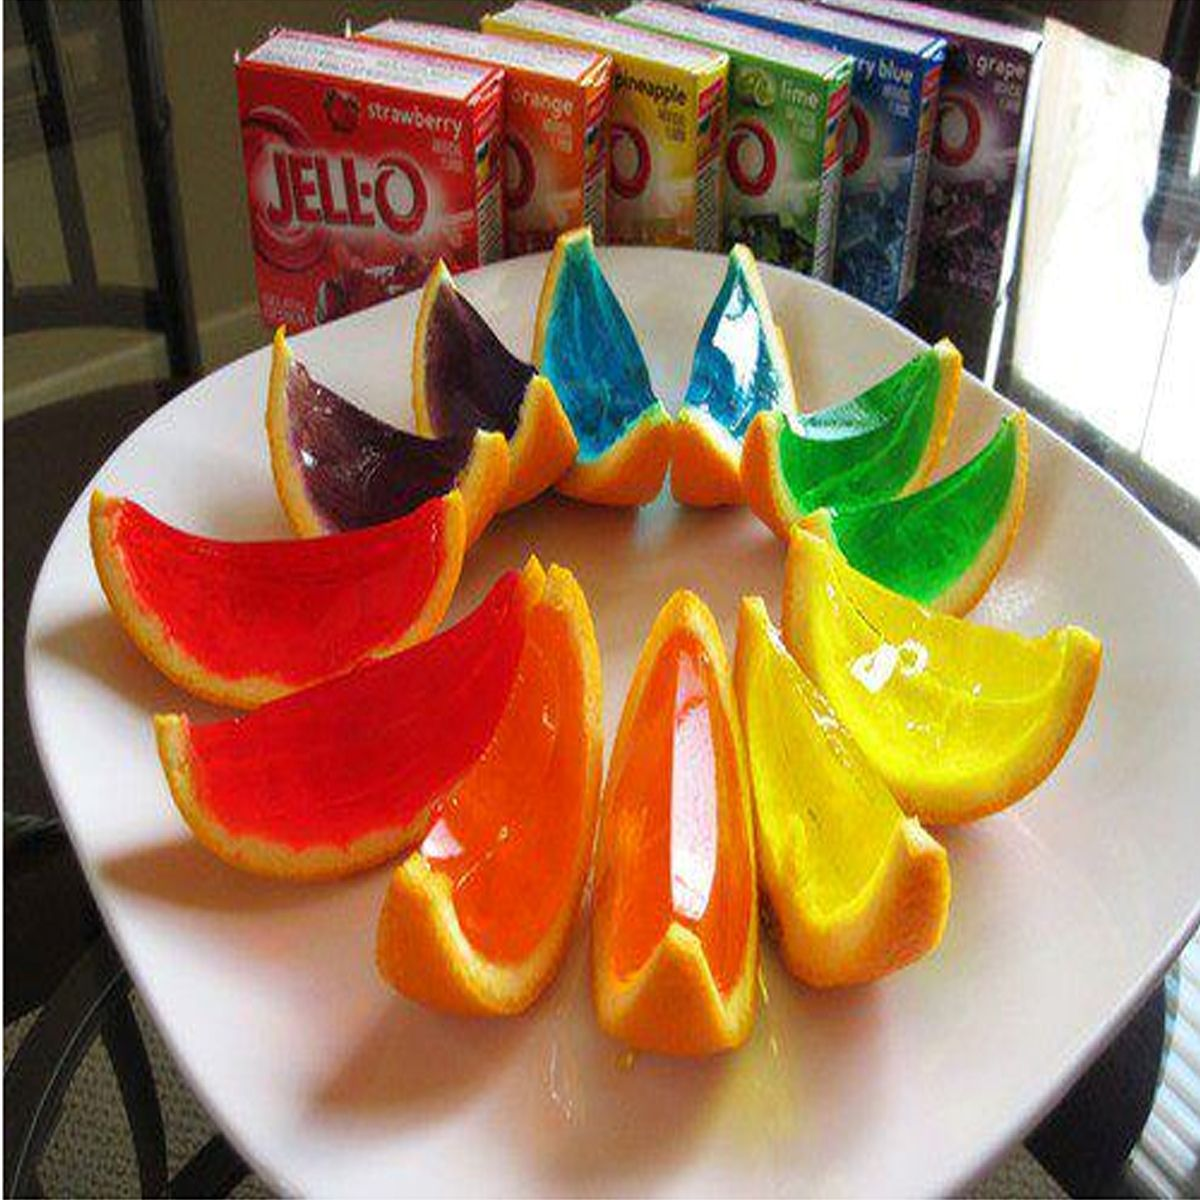 JellO-Shots....... Cut an Orange (or lemon or lime) in HALF and gut it. Mix the jello shot (1 cup hot water, box jello, 1 cup various liquors), stir till dissolved, then add the jello mix to the half shell and refrig for 3 hours or more. Once solid, slice and serve!